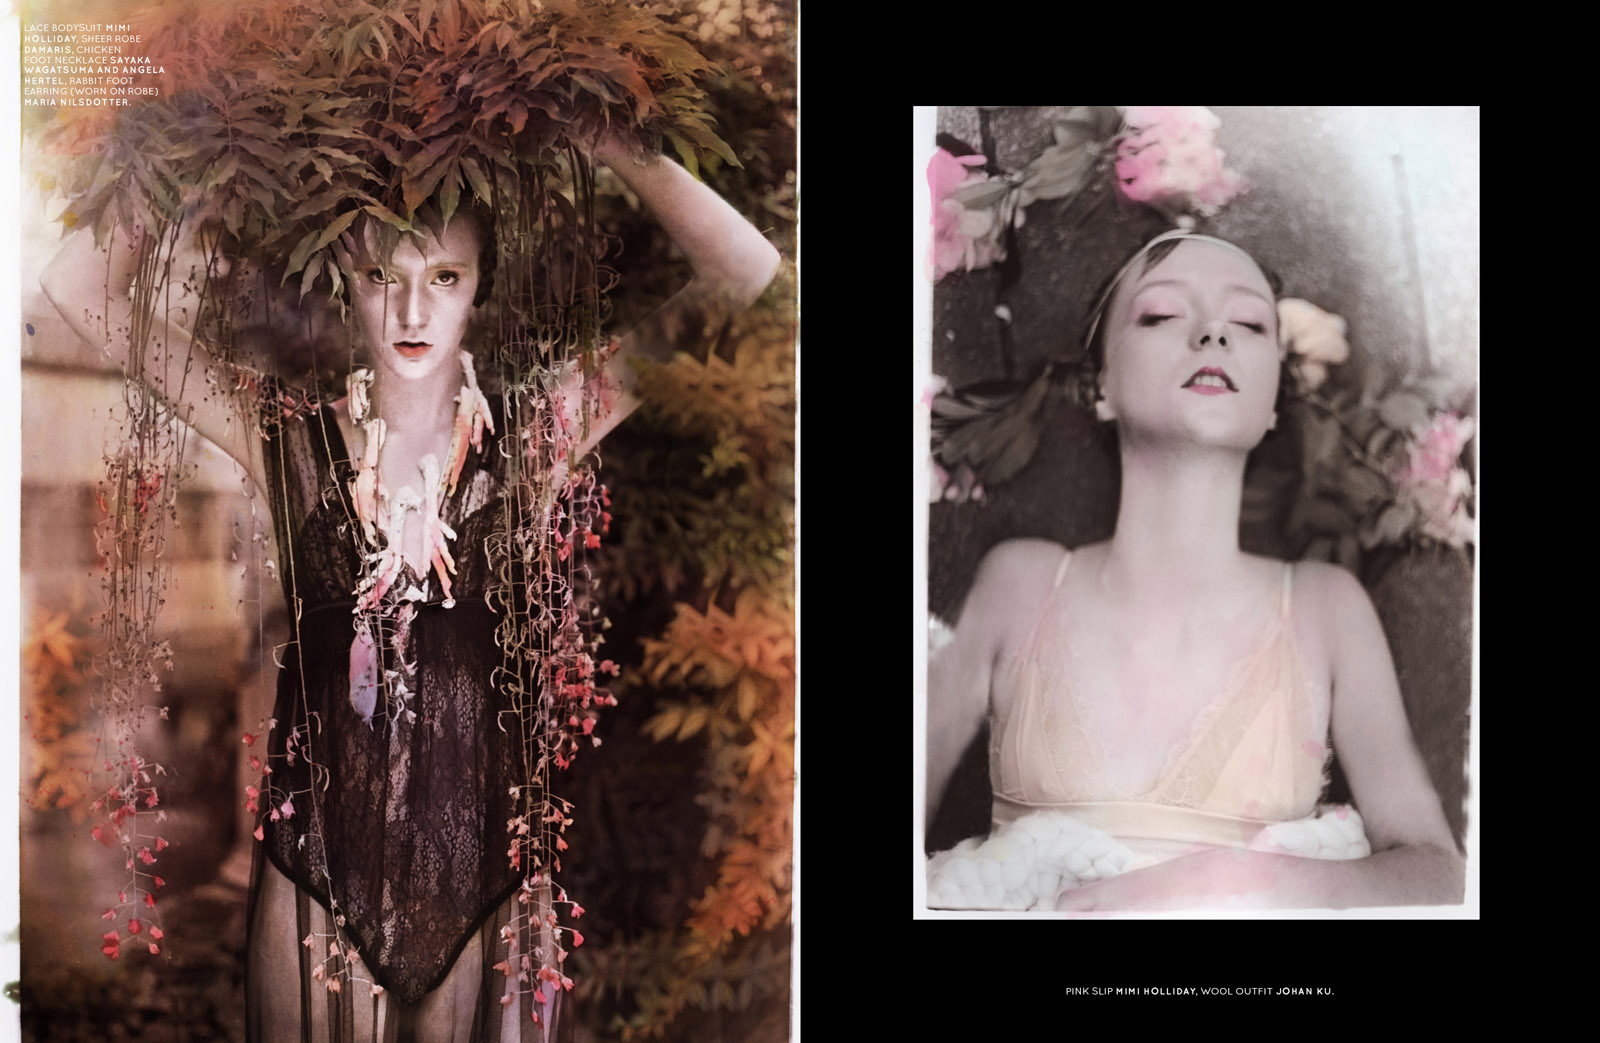 Left: lace bodysuit mimi Holliday, sheer robe damaris, chicken foot necklace Sayaka Wagatsuma and Angela Hertel, rabbit foot earring (worn on robe) Maria Nilsdotter. Right: Pink slip Mimi Holliday, wool outfit Johan Ku.